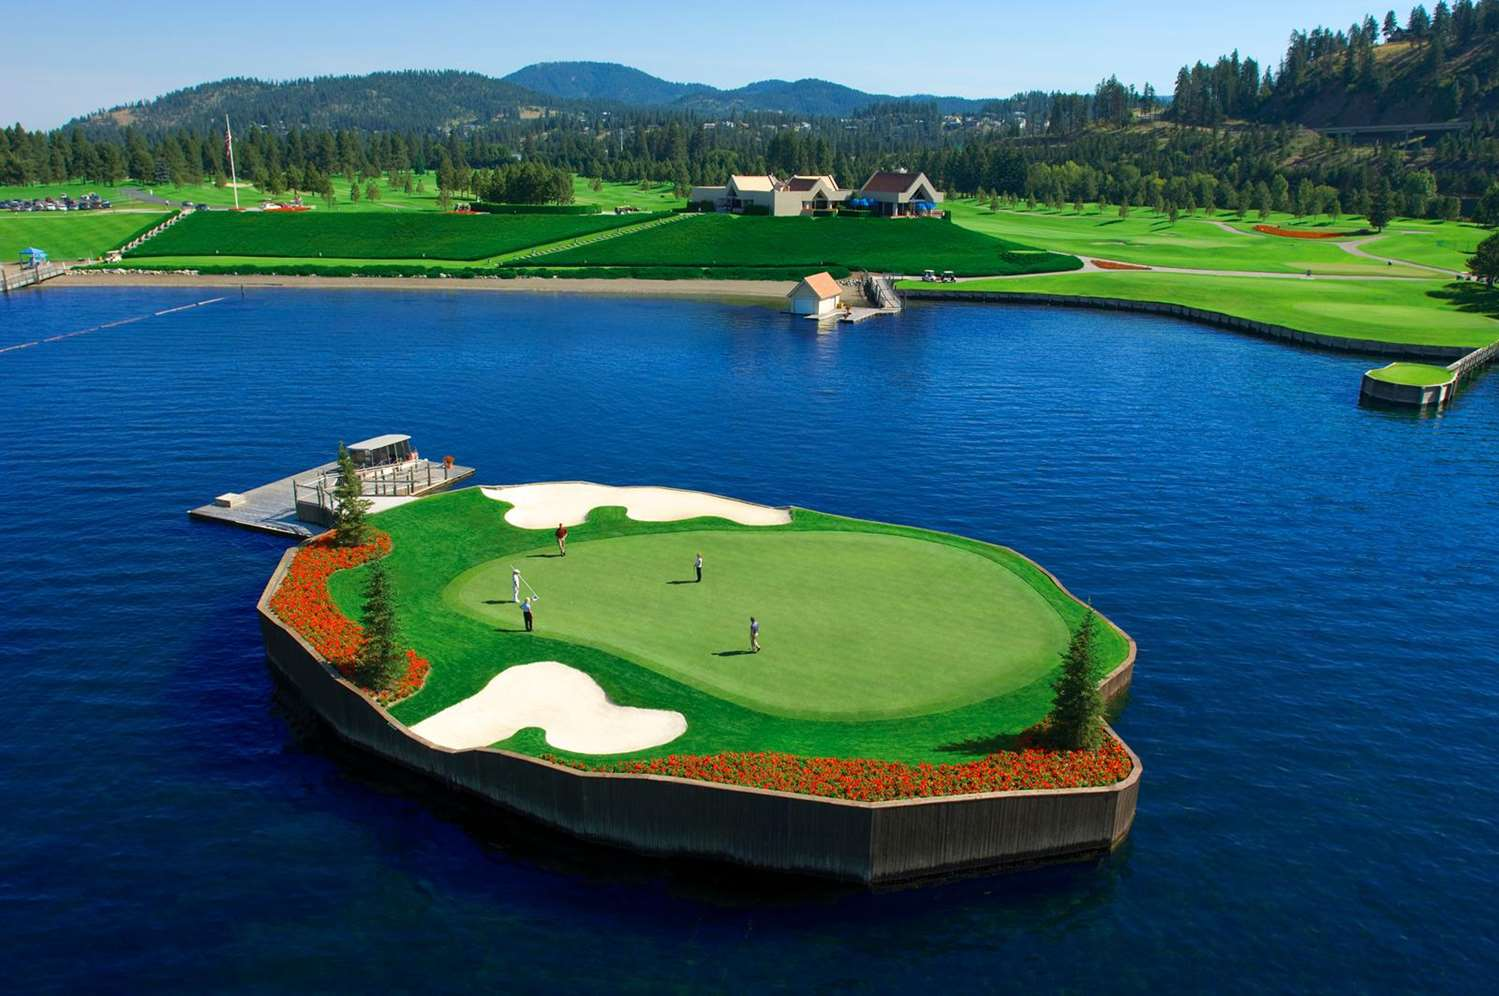 Golf - Coeur d'Alene Resort on the Lake